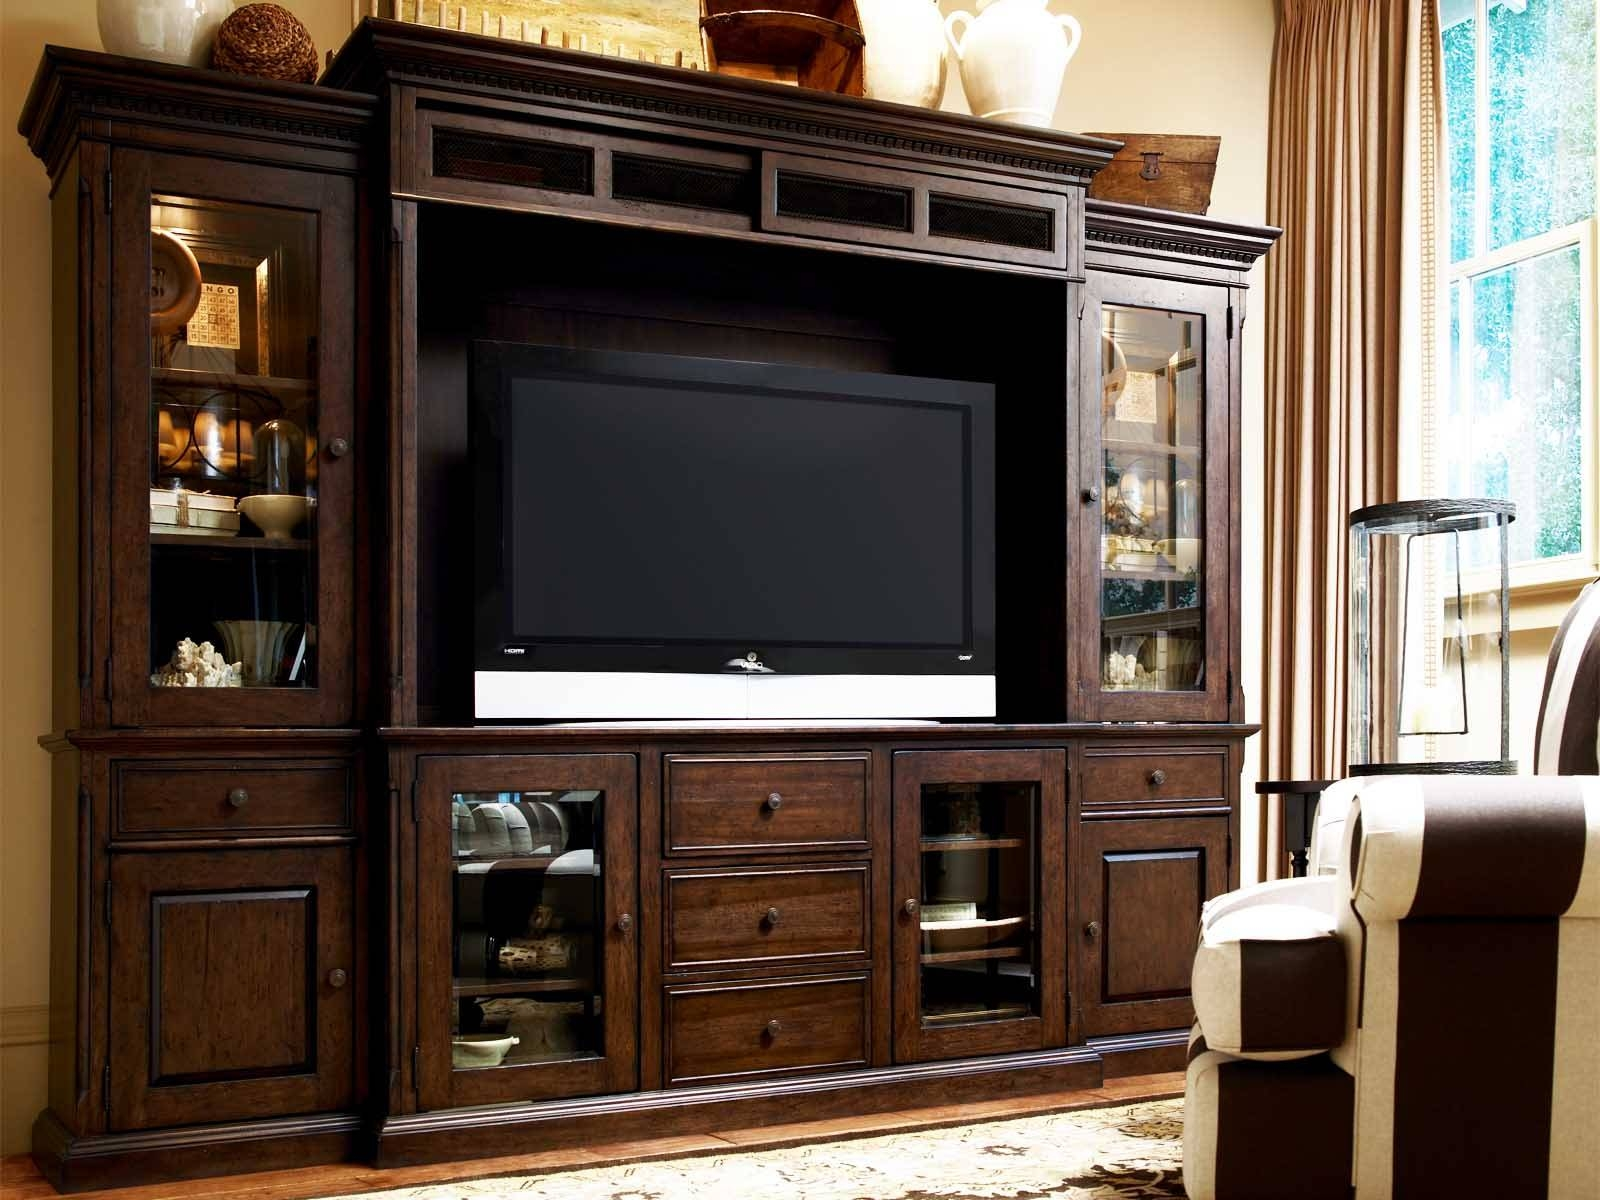 Large Brown Wooden Cabinet With Glass Also Wooden Doors Combined pertaining to Wooden Tv Cabinets With Glass Doors (Image 7 of 15)